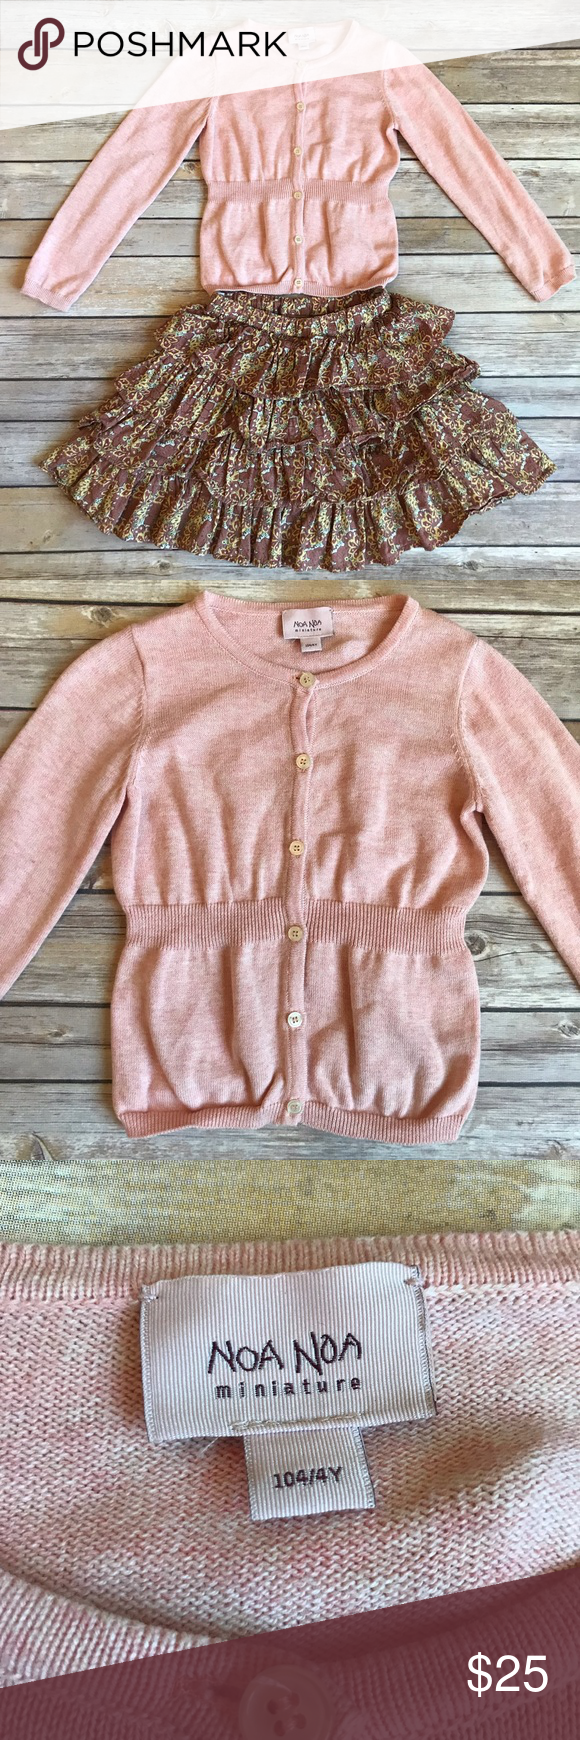 Noa Noa Size 4 beautiful Noa Noa pink cotton cardigan sweater and coordinating tiered twirl skirt with floral print and elastic waistband. No stains or flaws. Very good condition. Such an adorable outfit!! Noa Noa Matching Sets #twirlskirt Noa Noa Size 4 beautiful Noa Noa pink cotton cardigan sweater and coordinating tiered twirl skirt with floral print and elastic waistband. No stains or flaws. Very good condition. Such an adorable outfit!! Noa Noa Matching Sets #twirlskirt